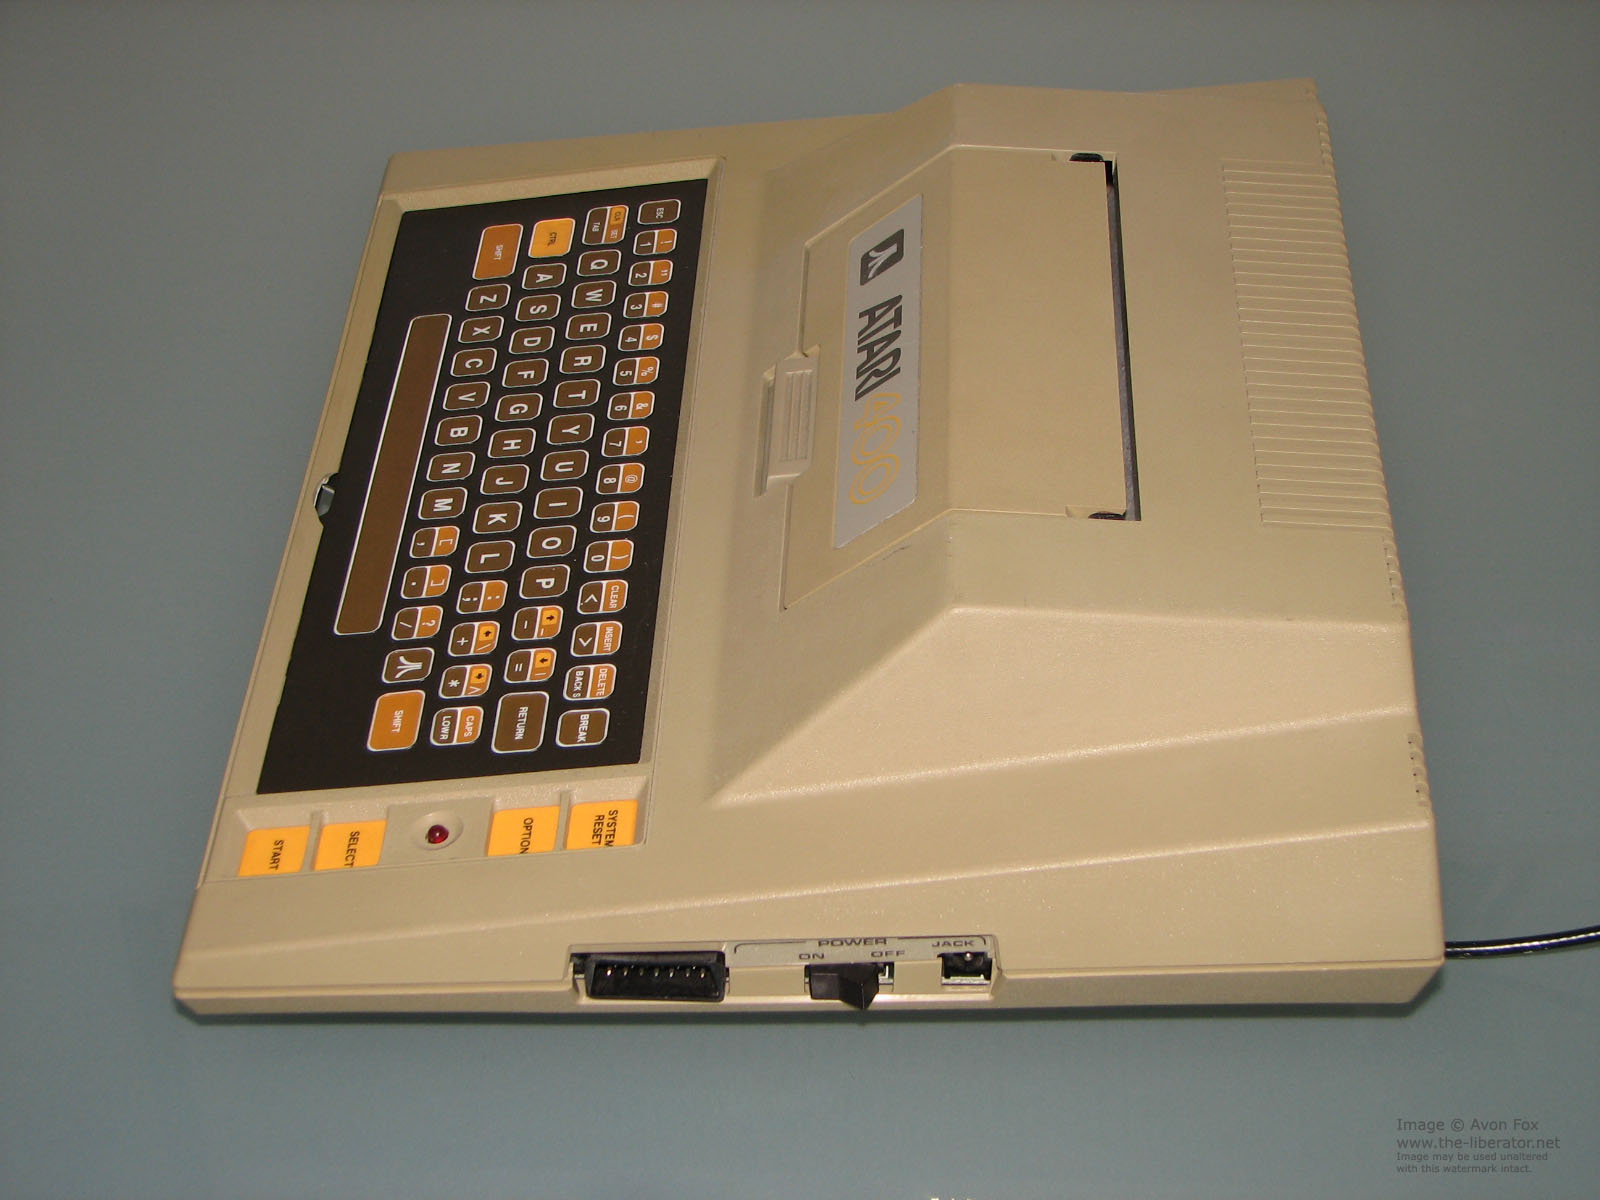 Images of Atari 400 | 1600x1200